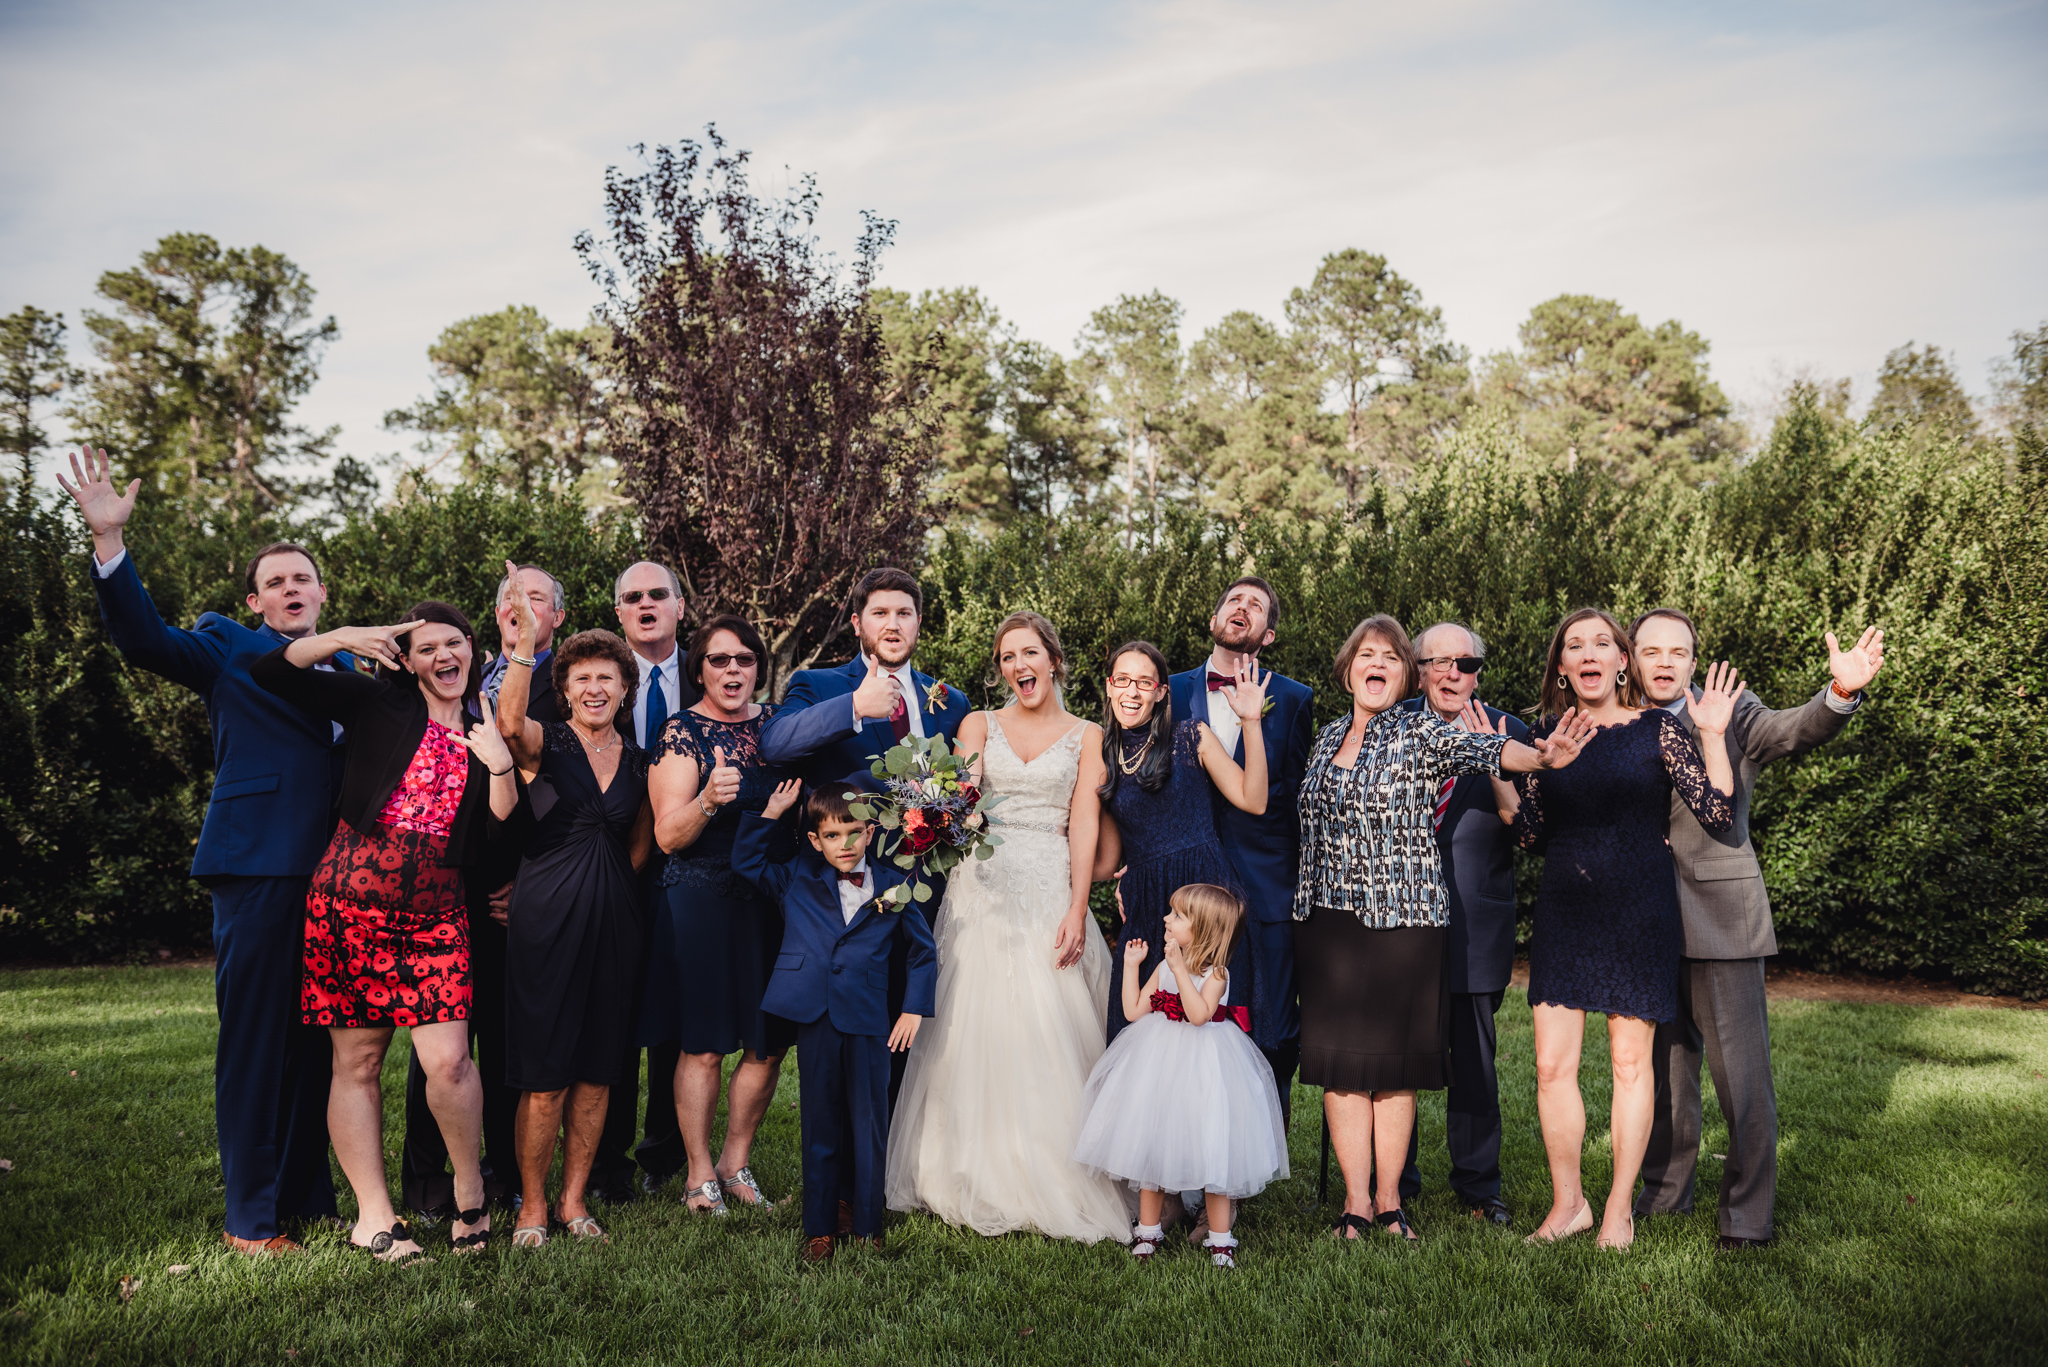 a-fun-family-picture-of-the-grooms-side-of-the-family.jpg